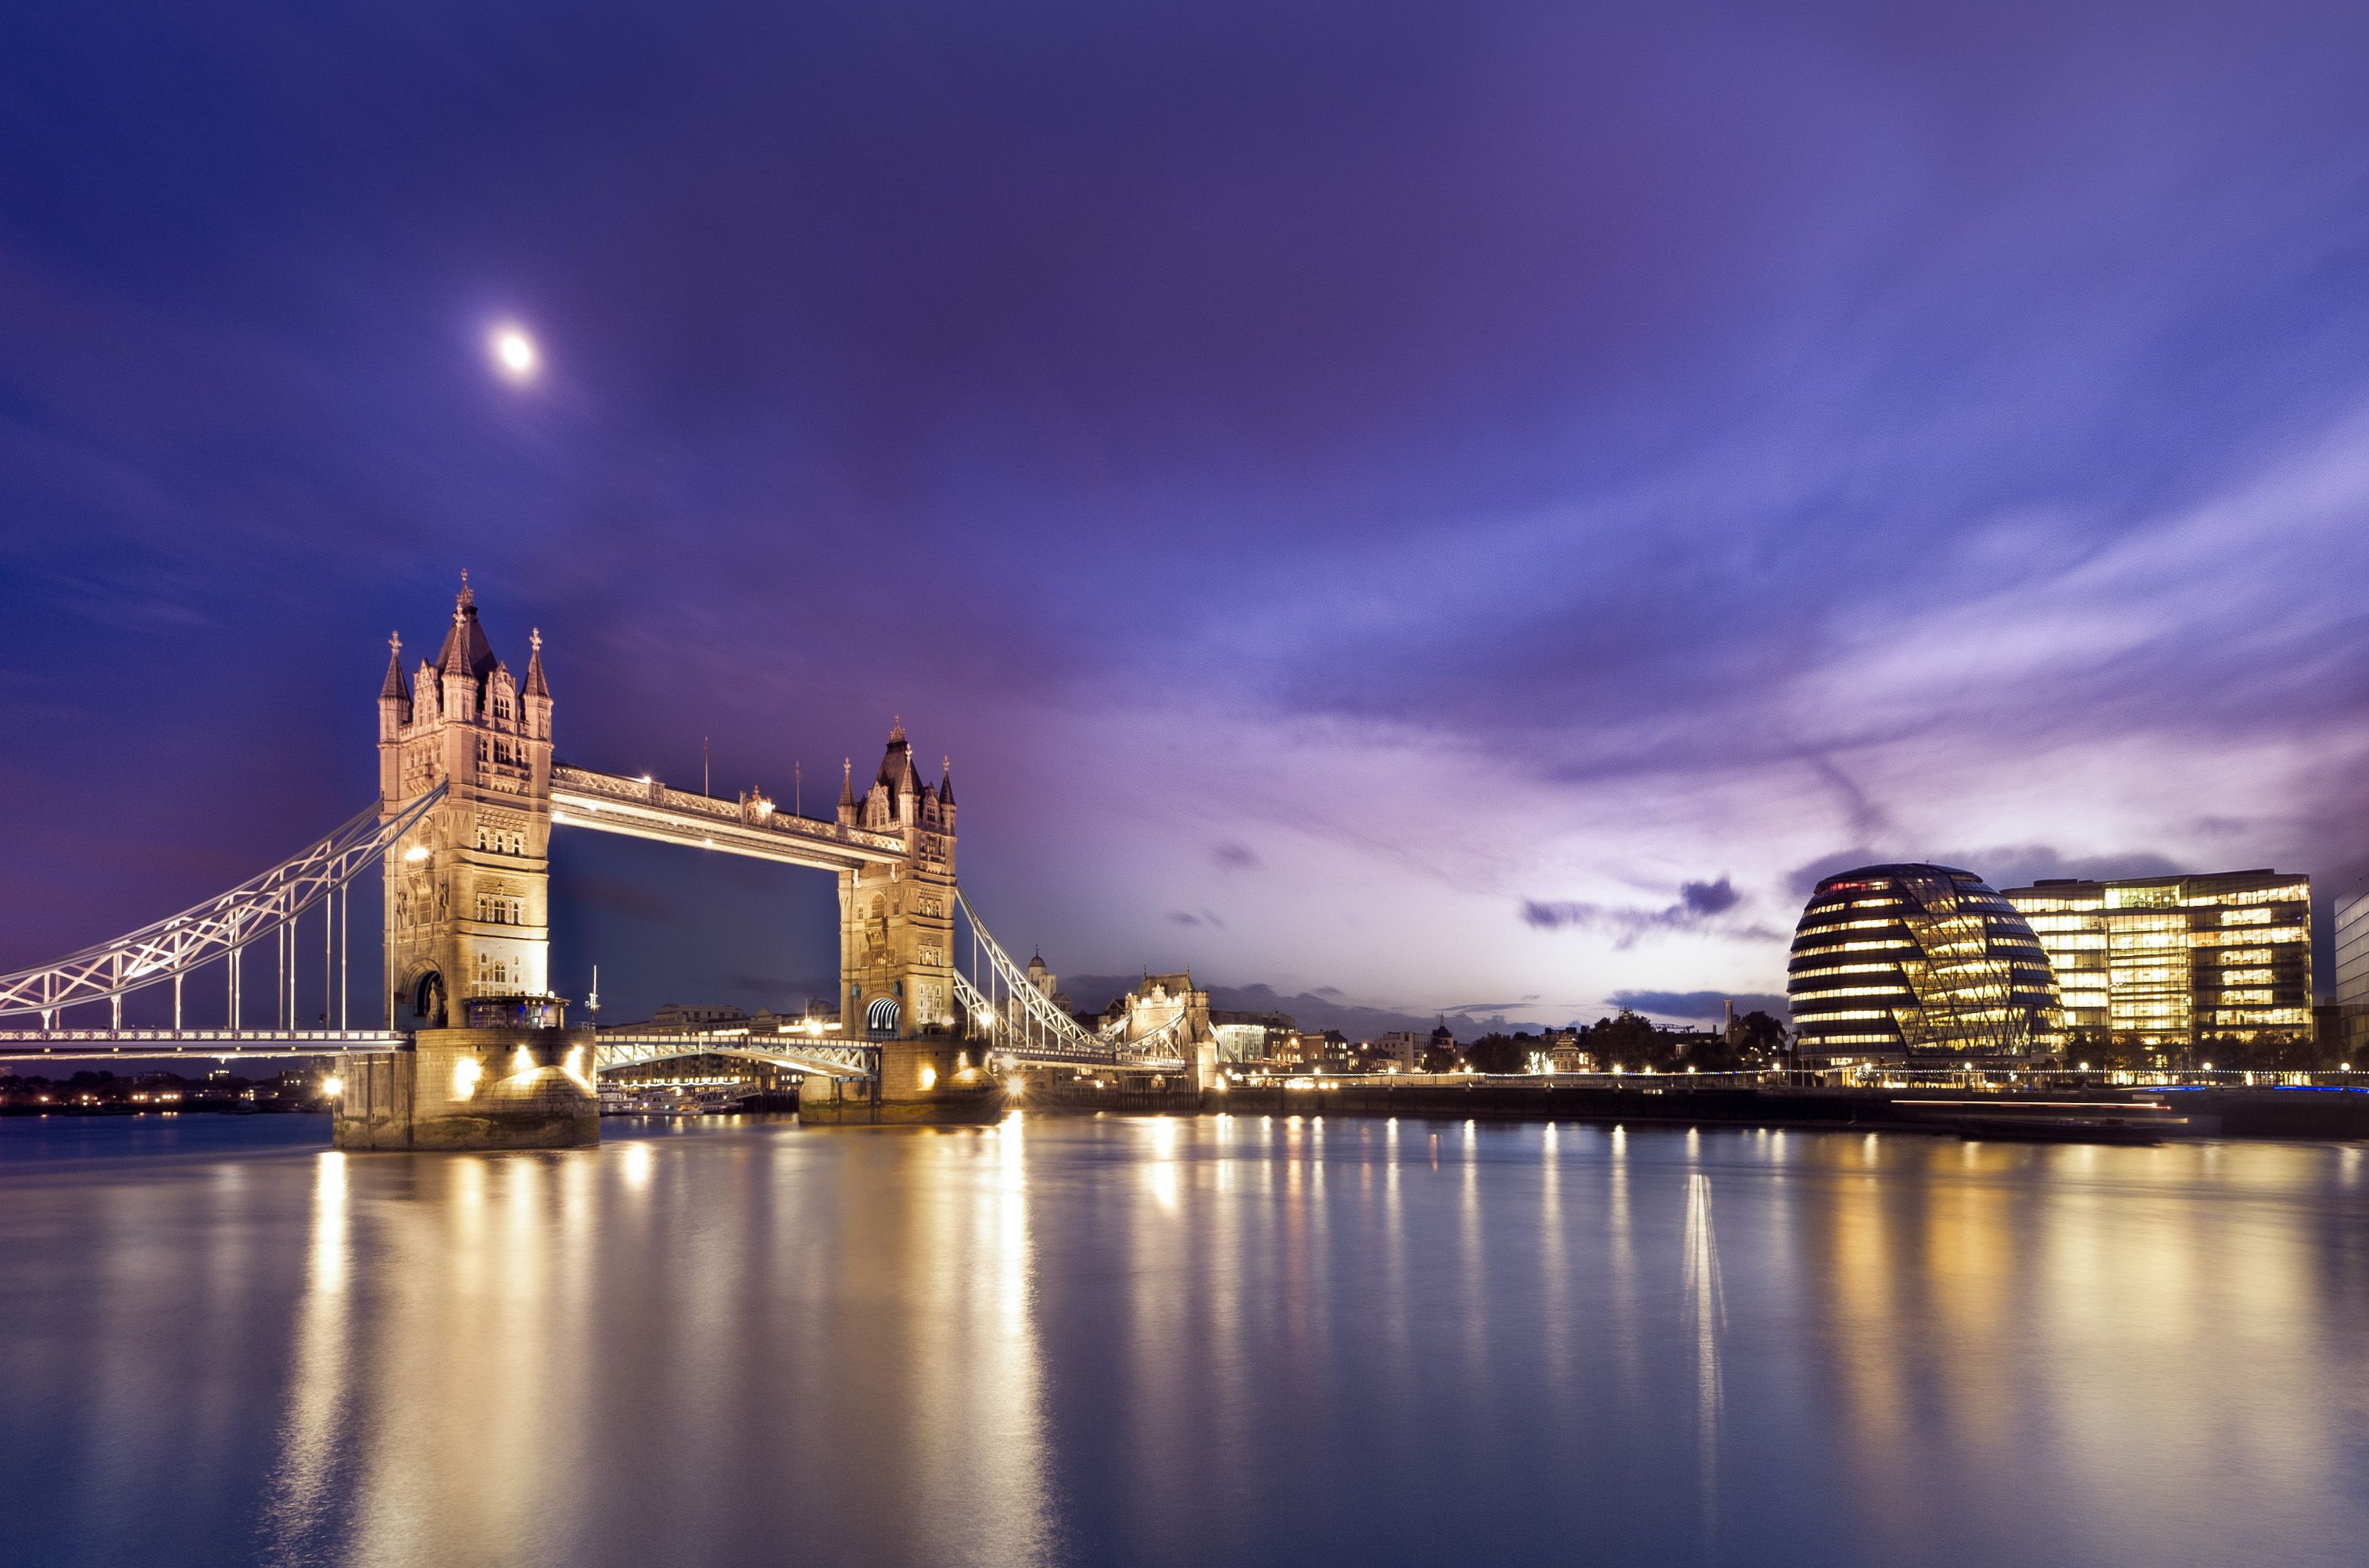 The Bateaux London Thames Dinner Cruise